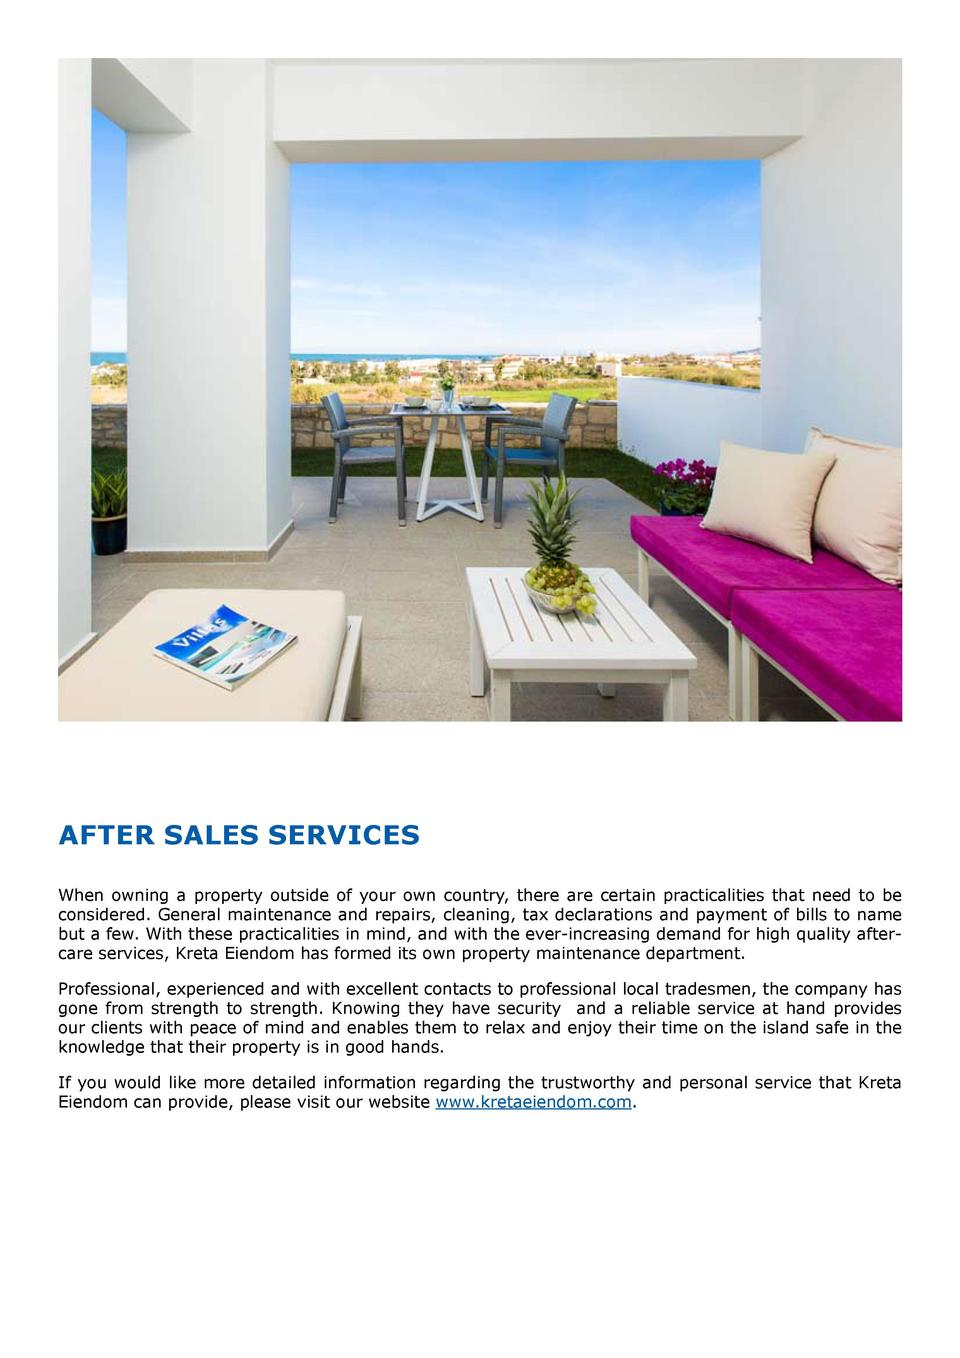 After Sales Services When owning a property outside of your own country, there are certain practicalities that need to be ...